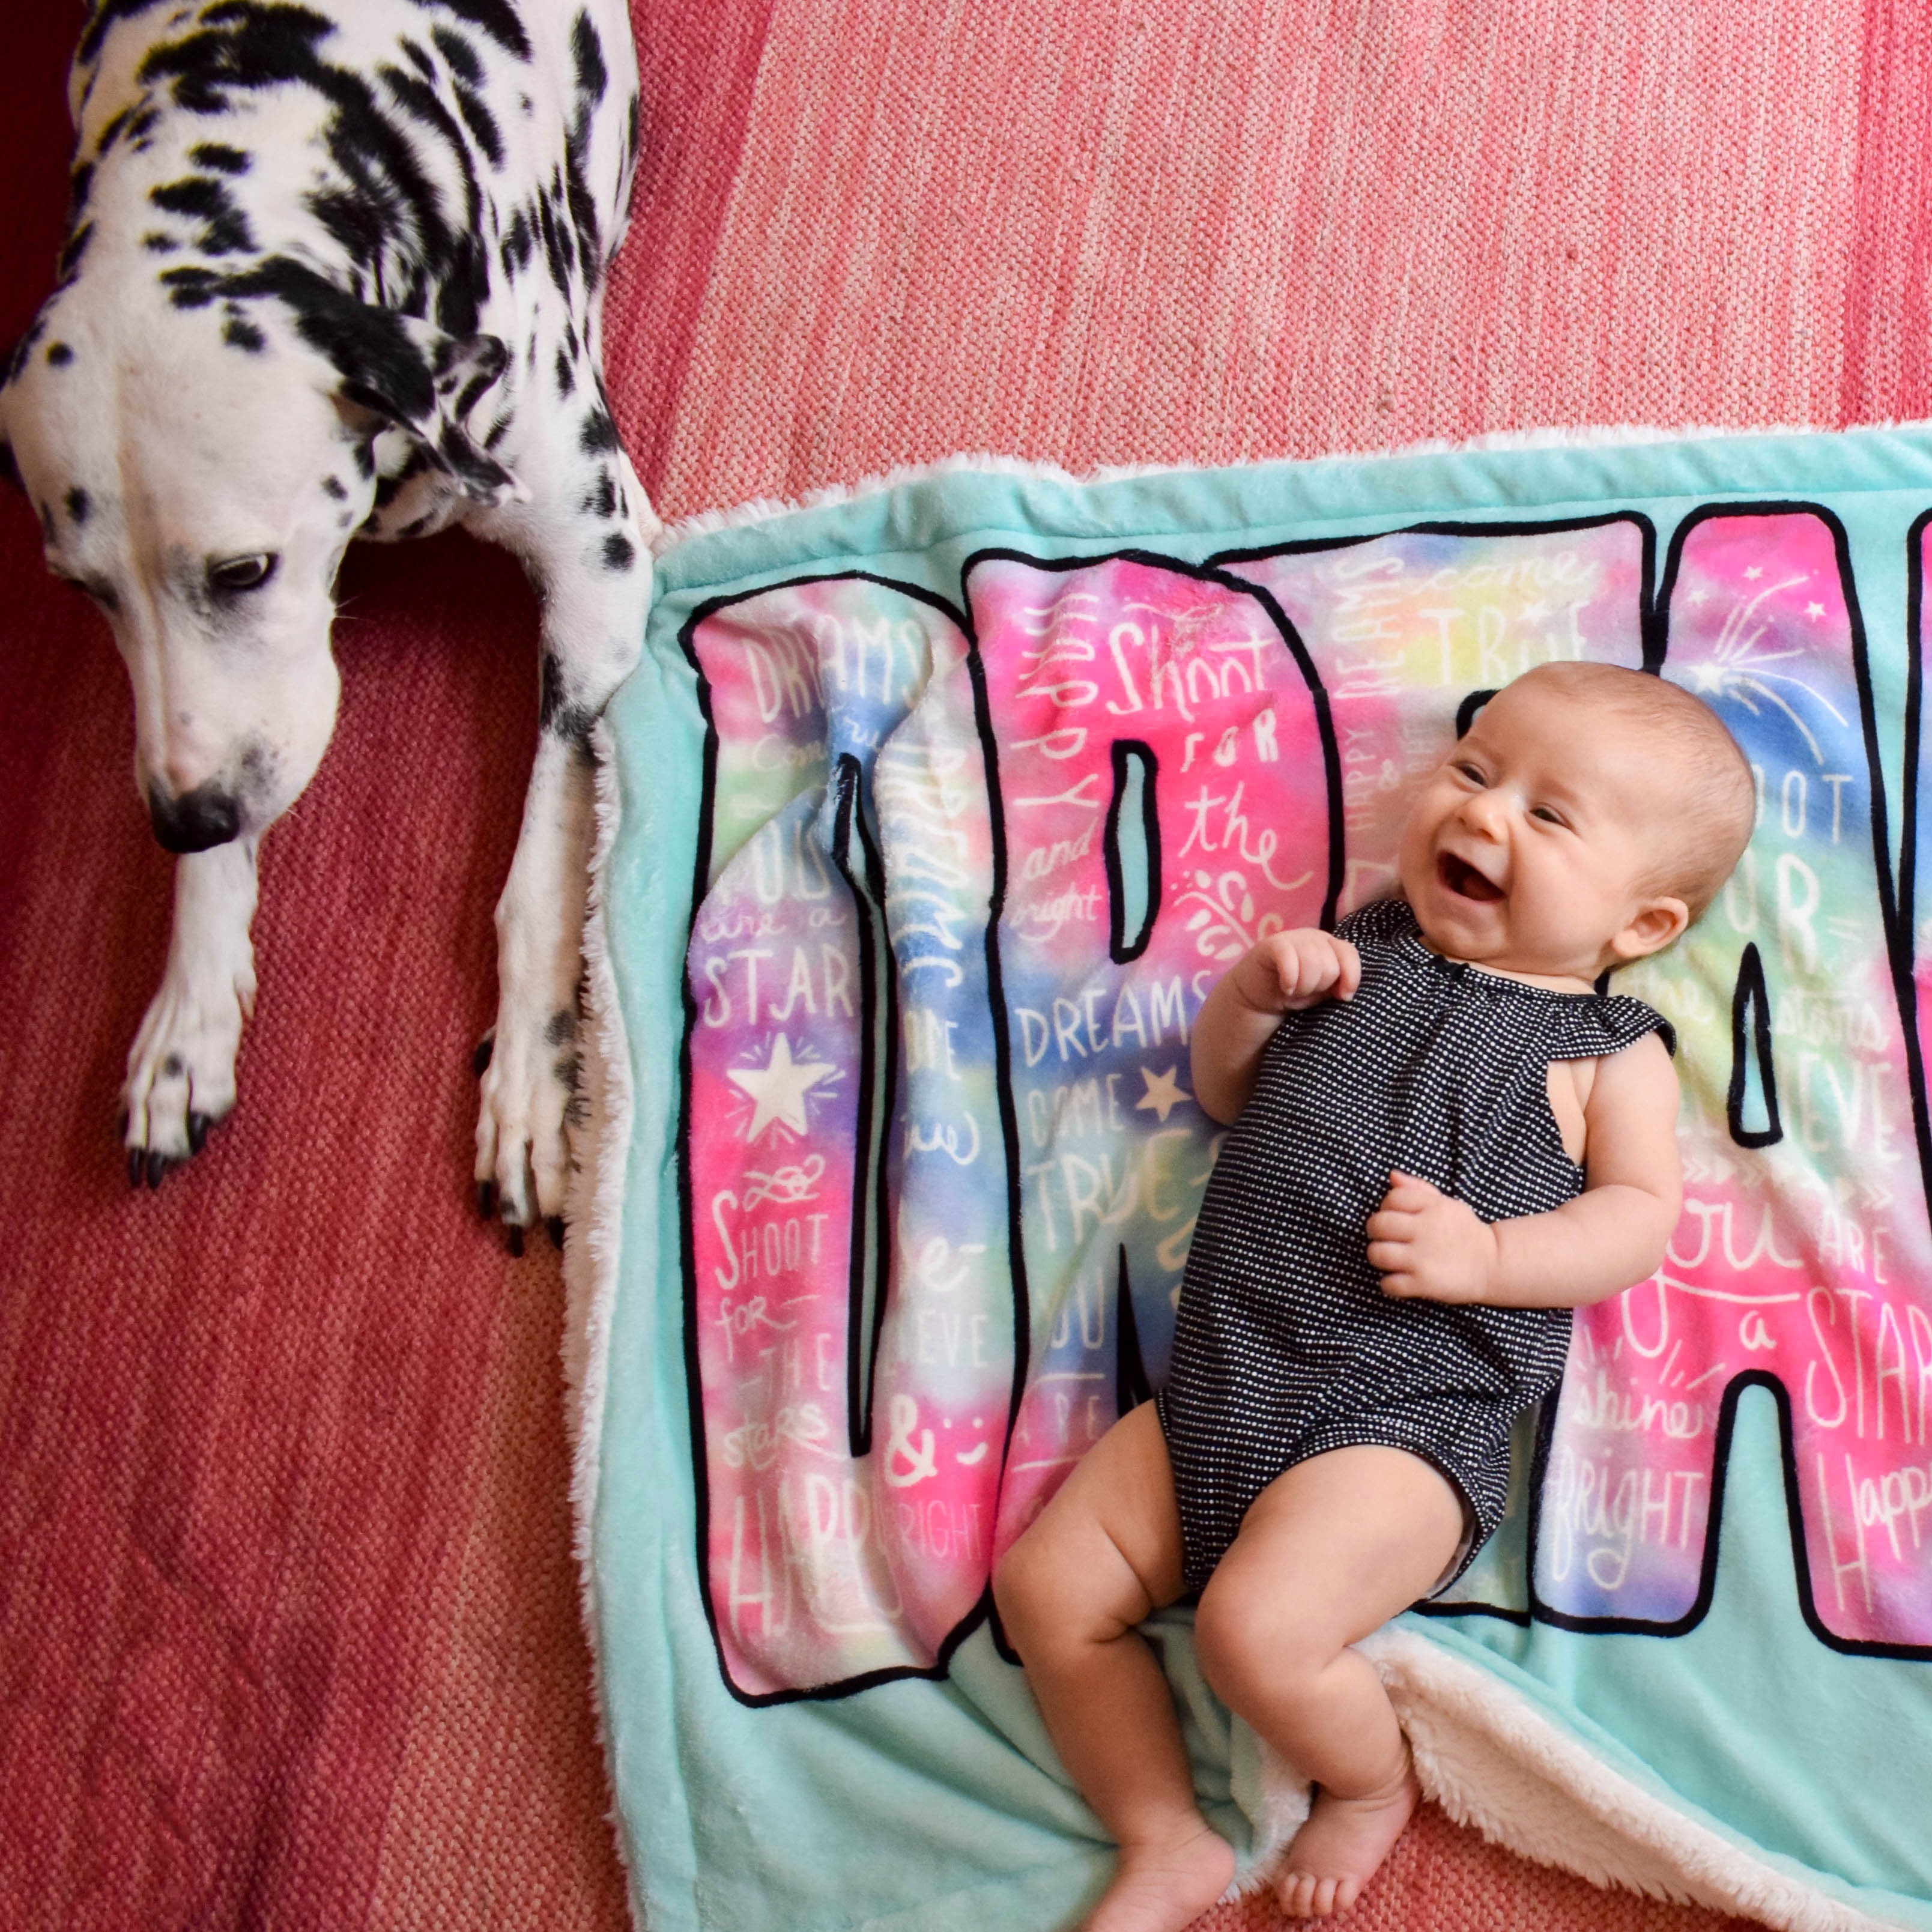 Baby Girl and Dog Laying on Dream Big Baby Blanket